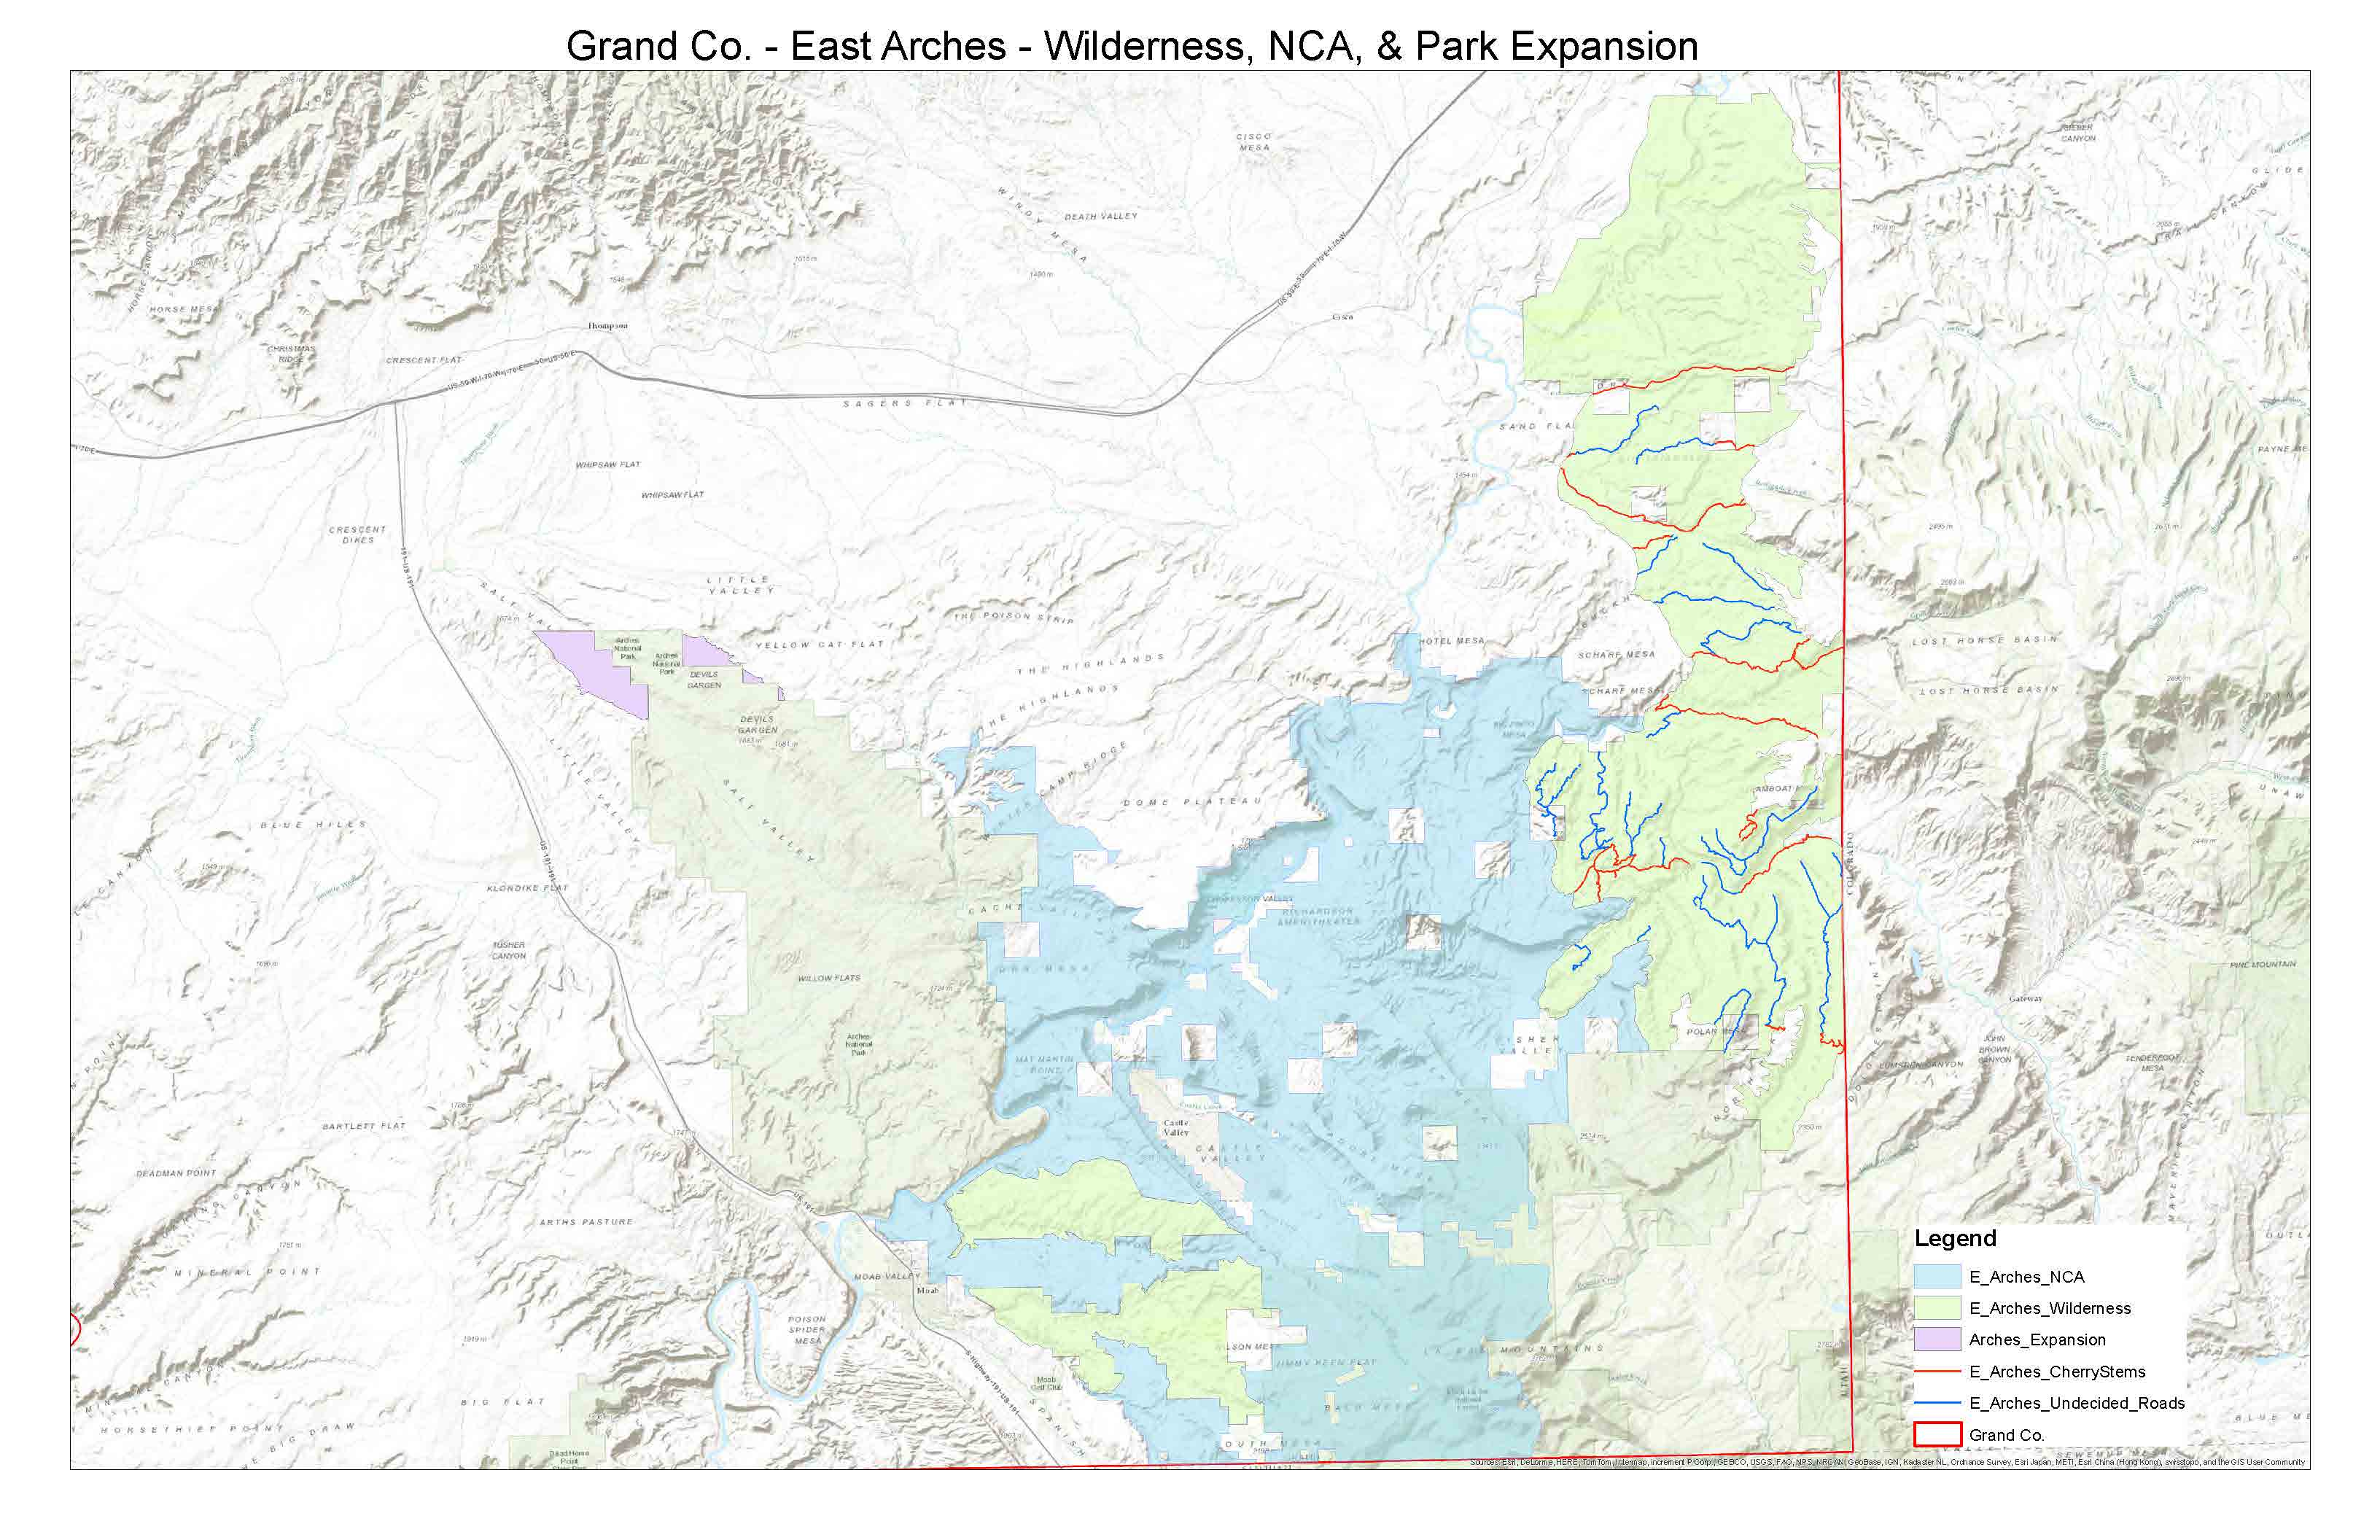 E_Arches_NCA_Wilderness_Park_LowRes